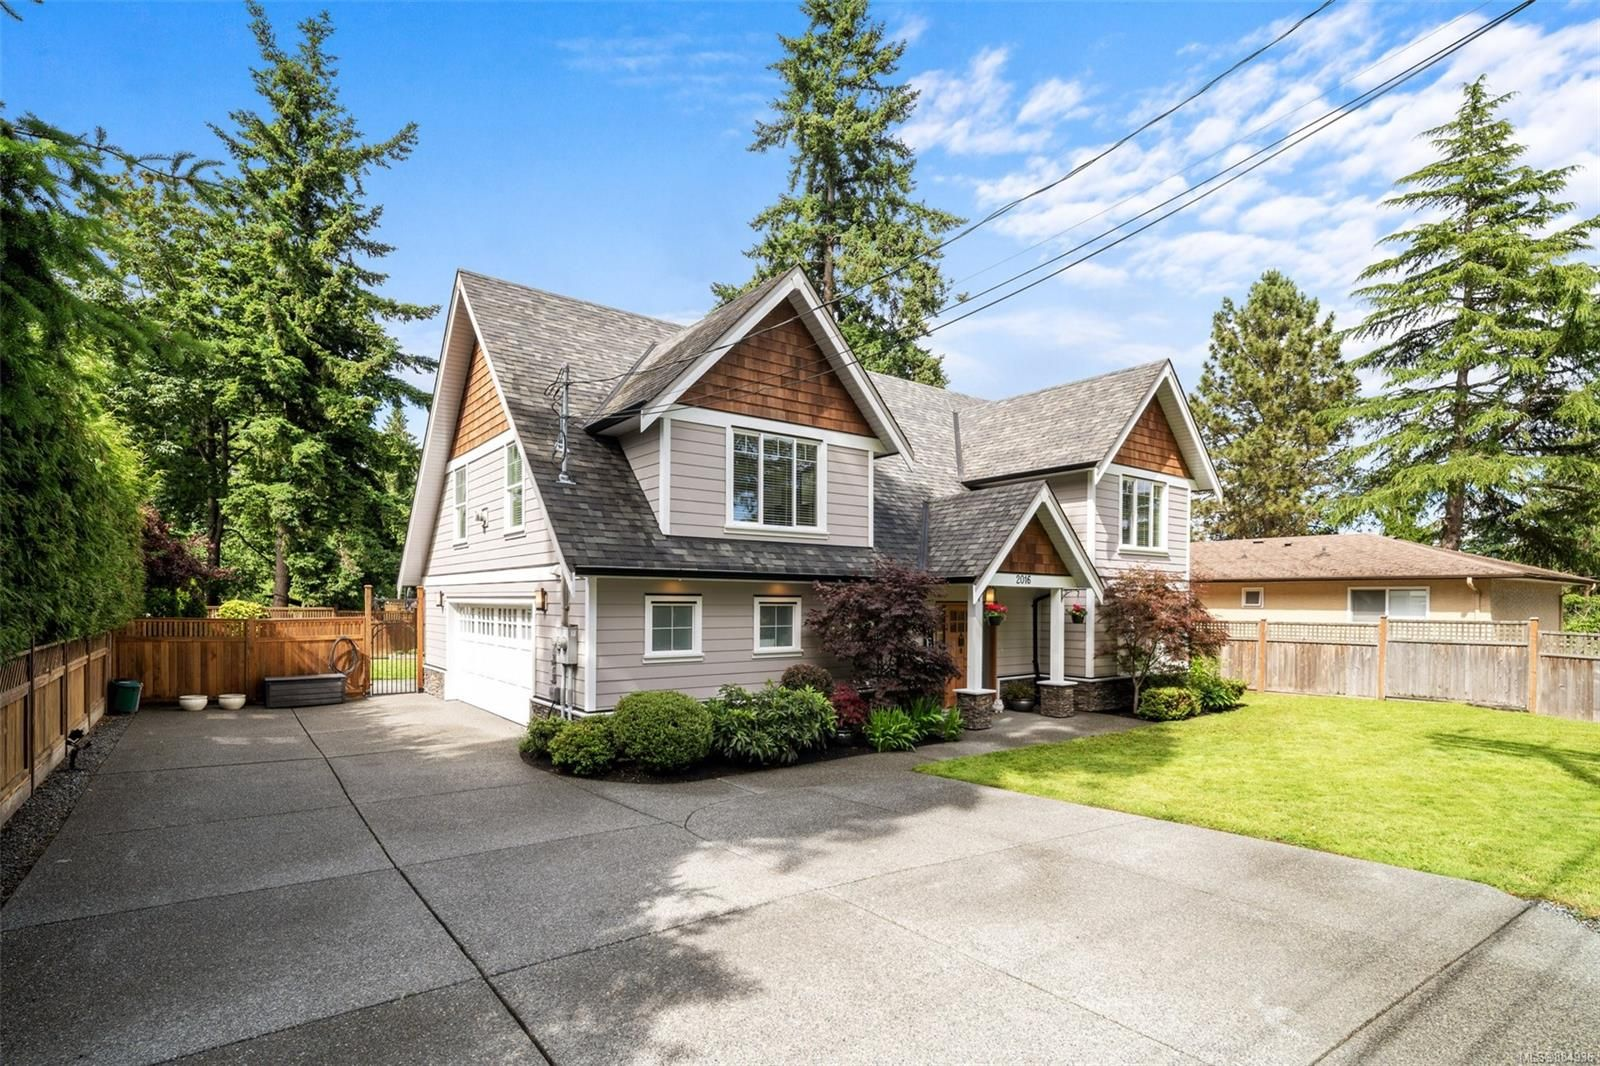 Main Photo: 2016 Stellys Cross Rd in : CS Saanichton House for sale (Central Saanich)  : MLS®# 884936